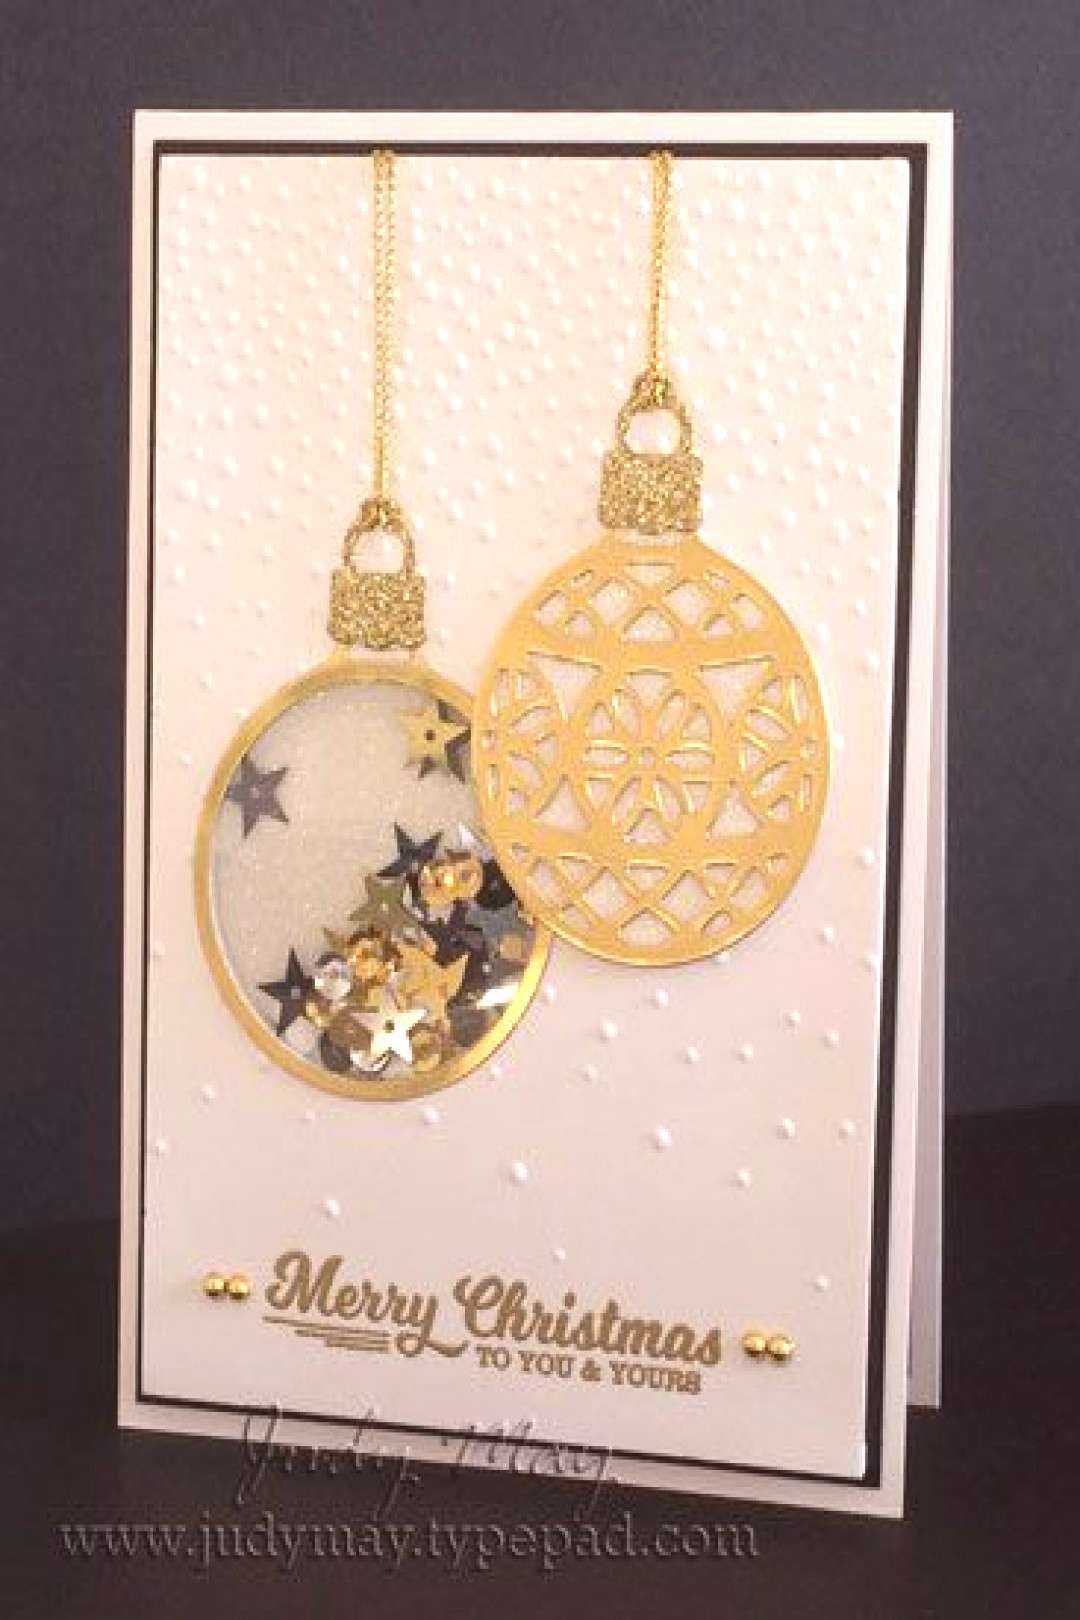 Stampin' Up! Shaker Card using 'Embellished Ornaments' & 'Delicate Ornaments' Thinlits. Judy May, J